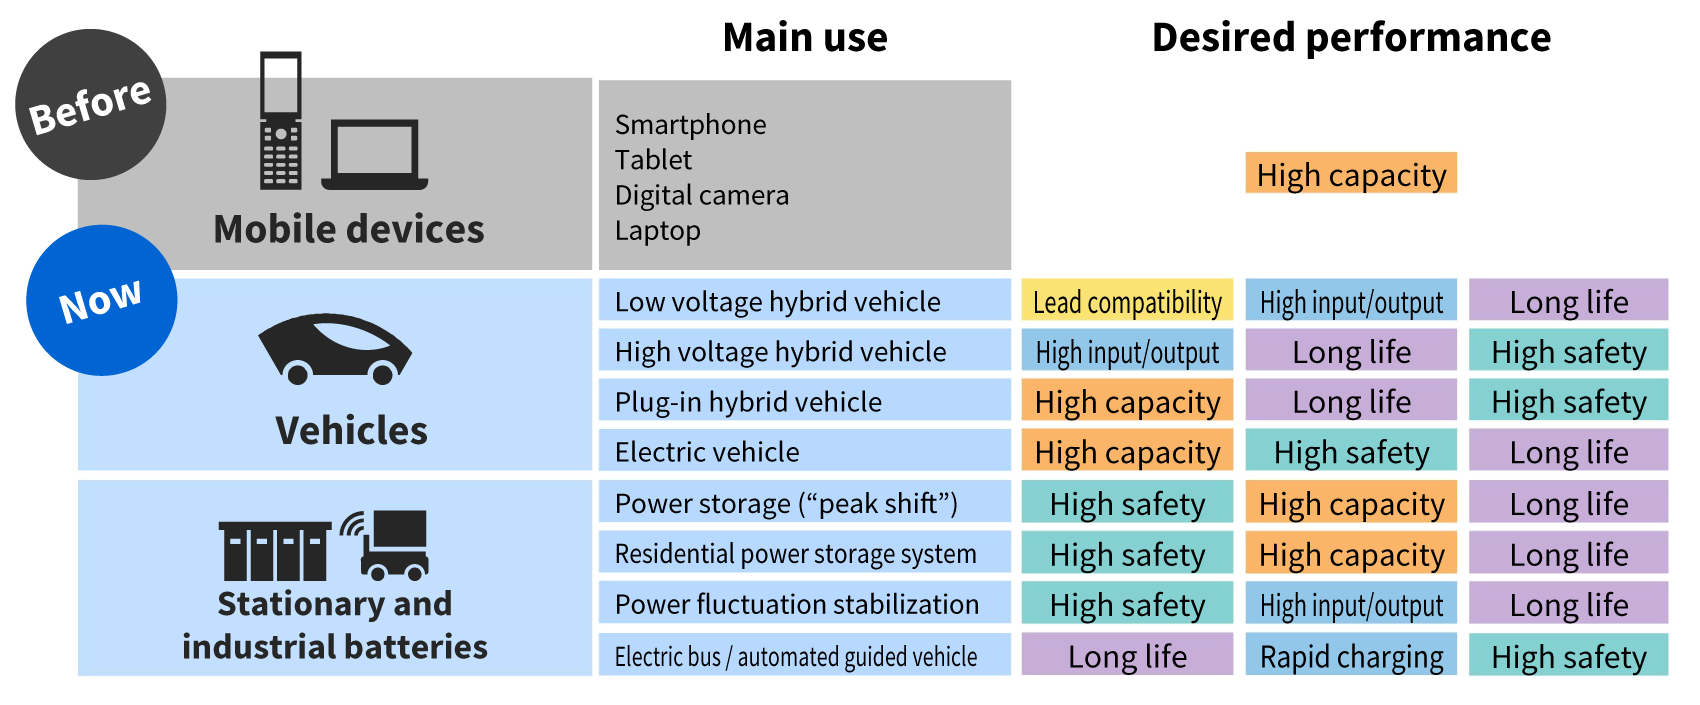 Different performances are required for different uses of lithium-ion batteries